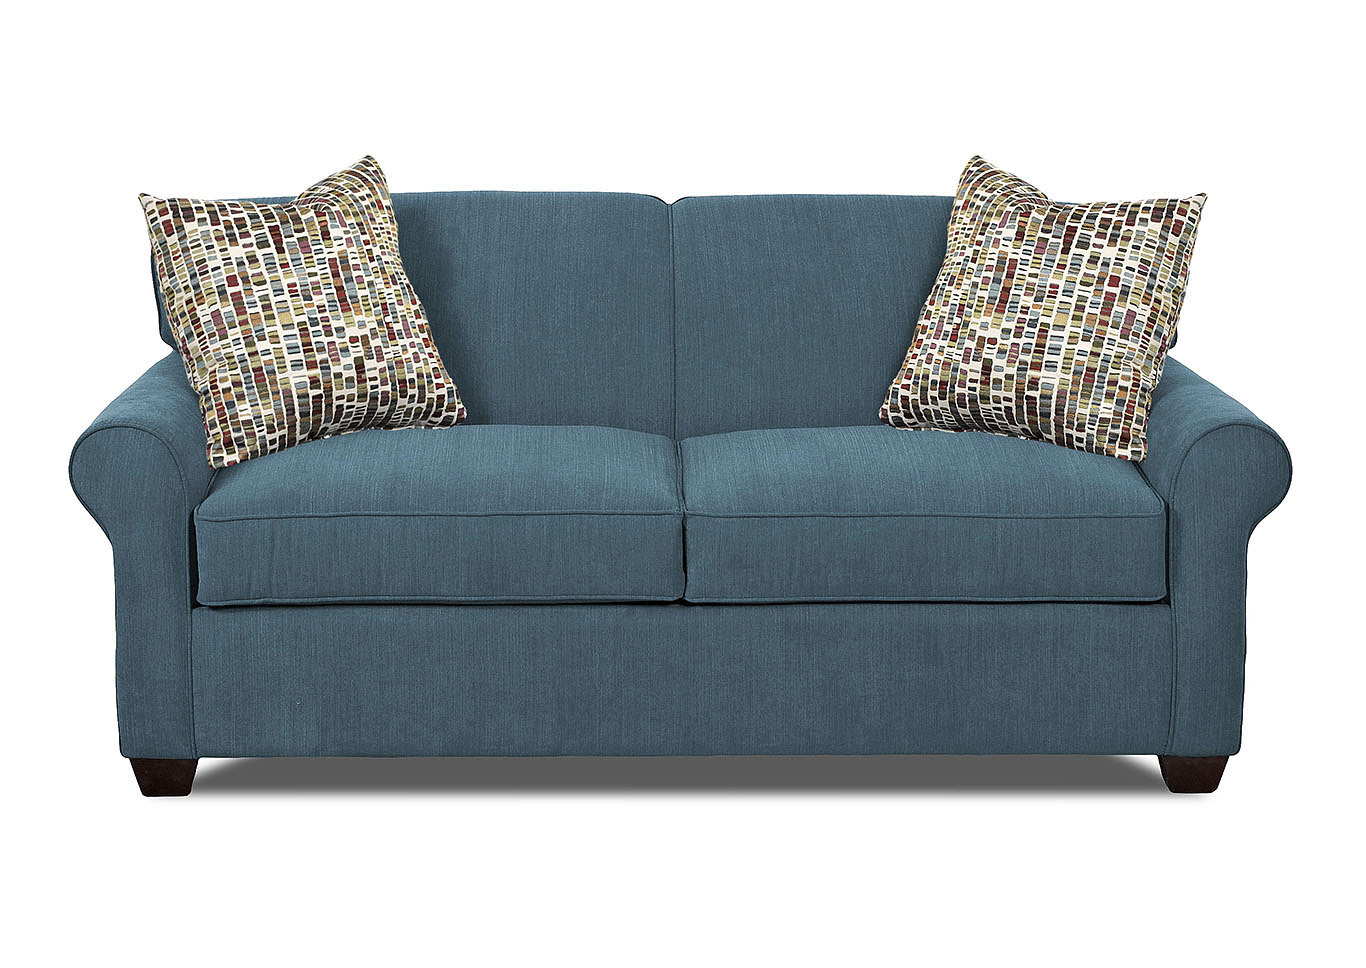 Mayhew Teal Sleeper Fabric Sofa,Klaussner Home Furnishings